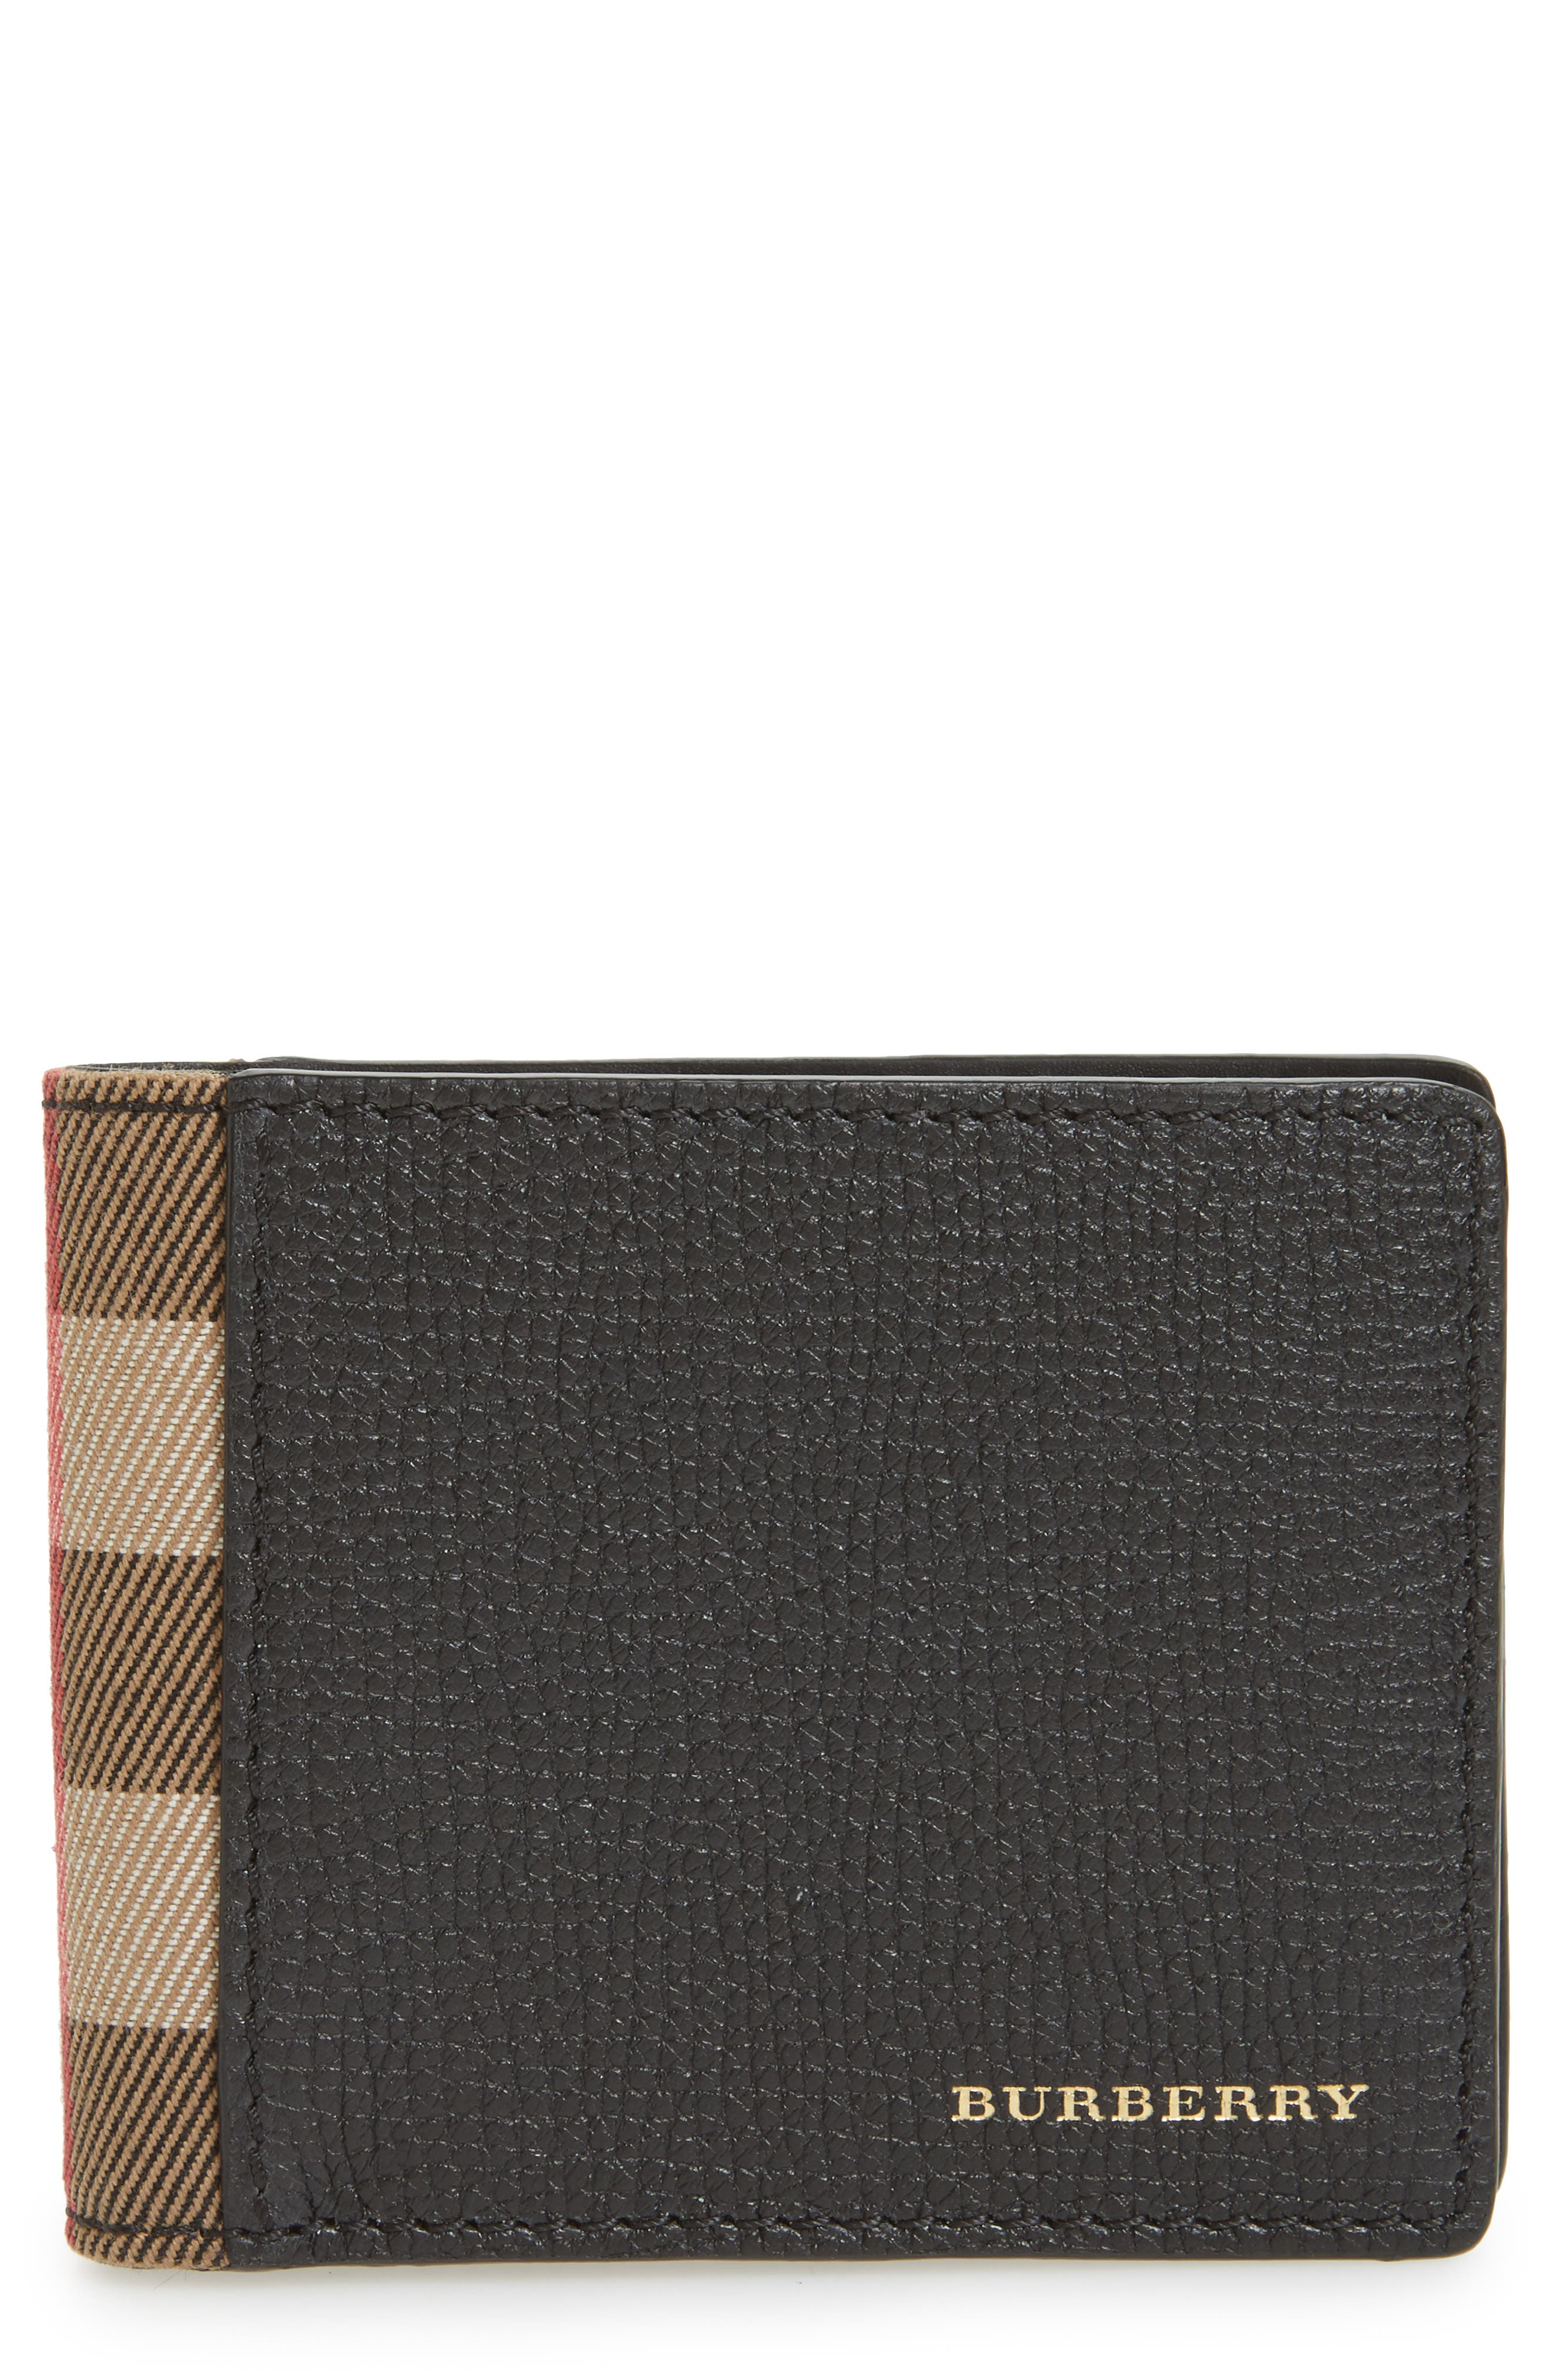 Burberry Check Leather Wallet